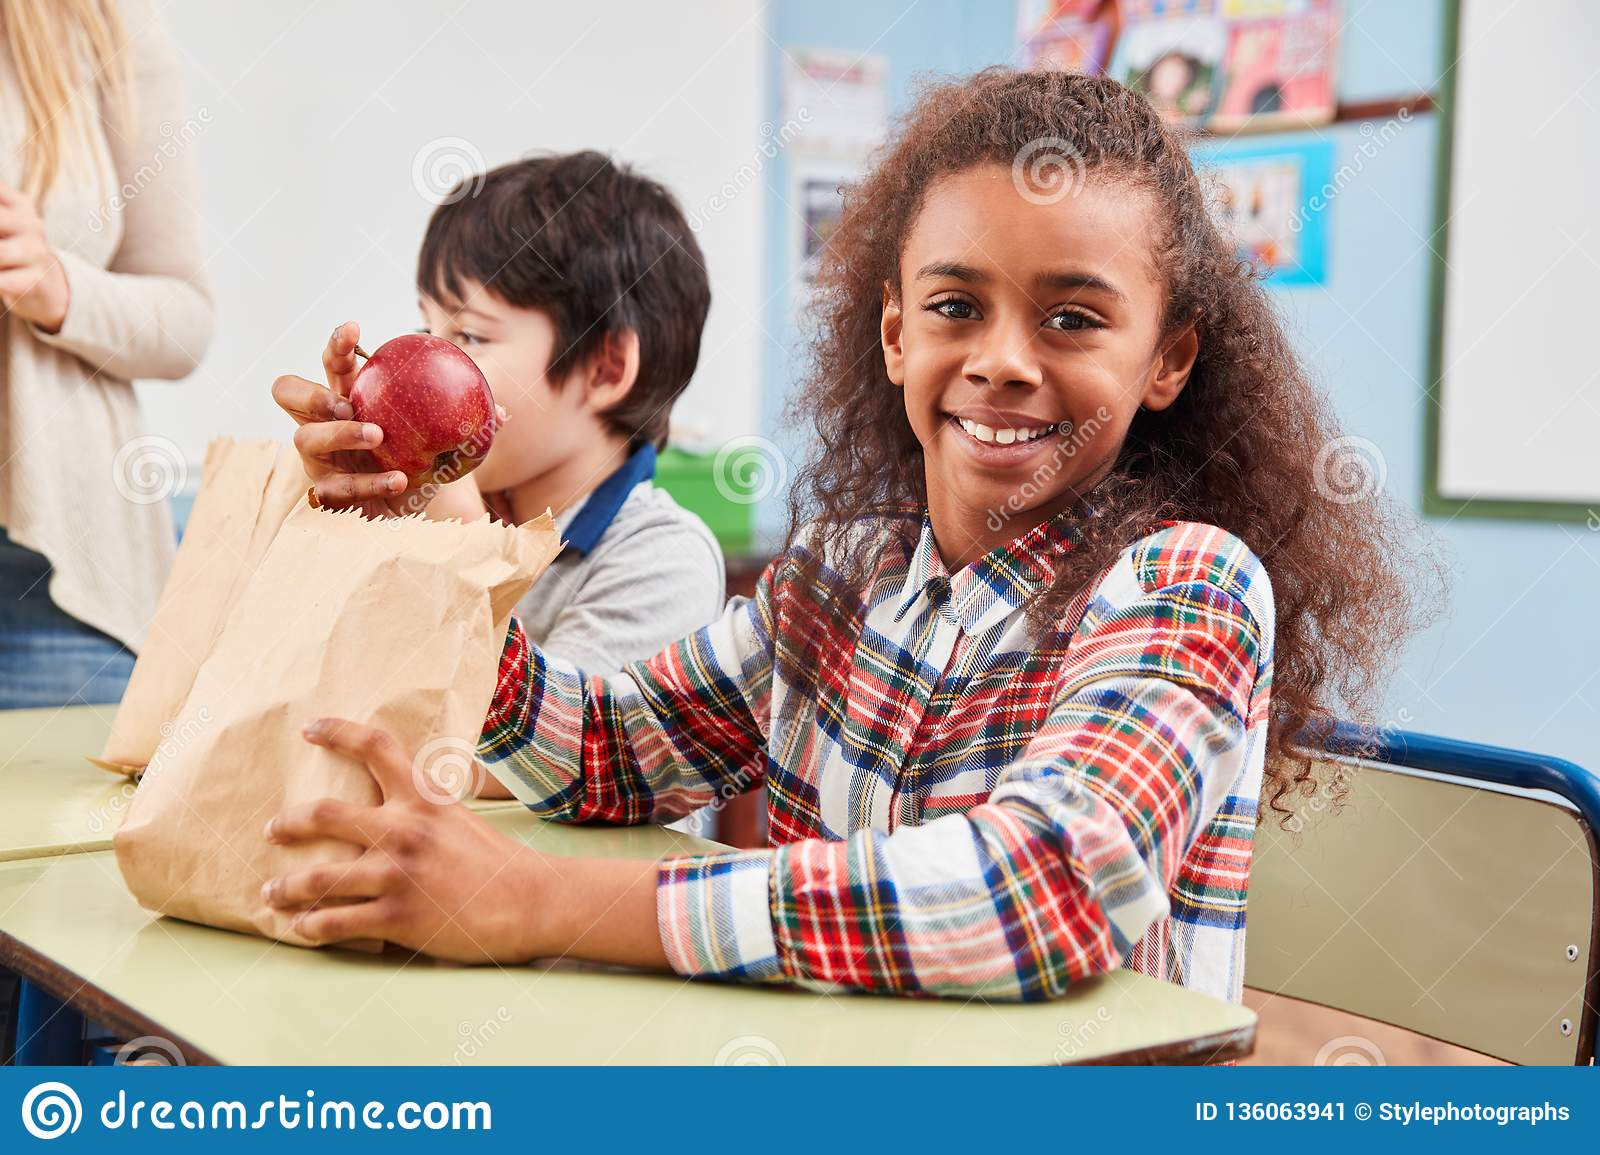 Girl with apple as a healthy snack